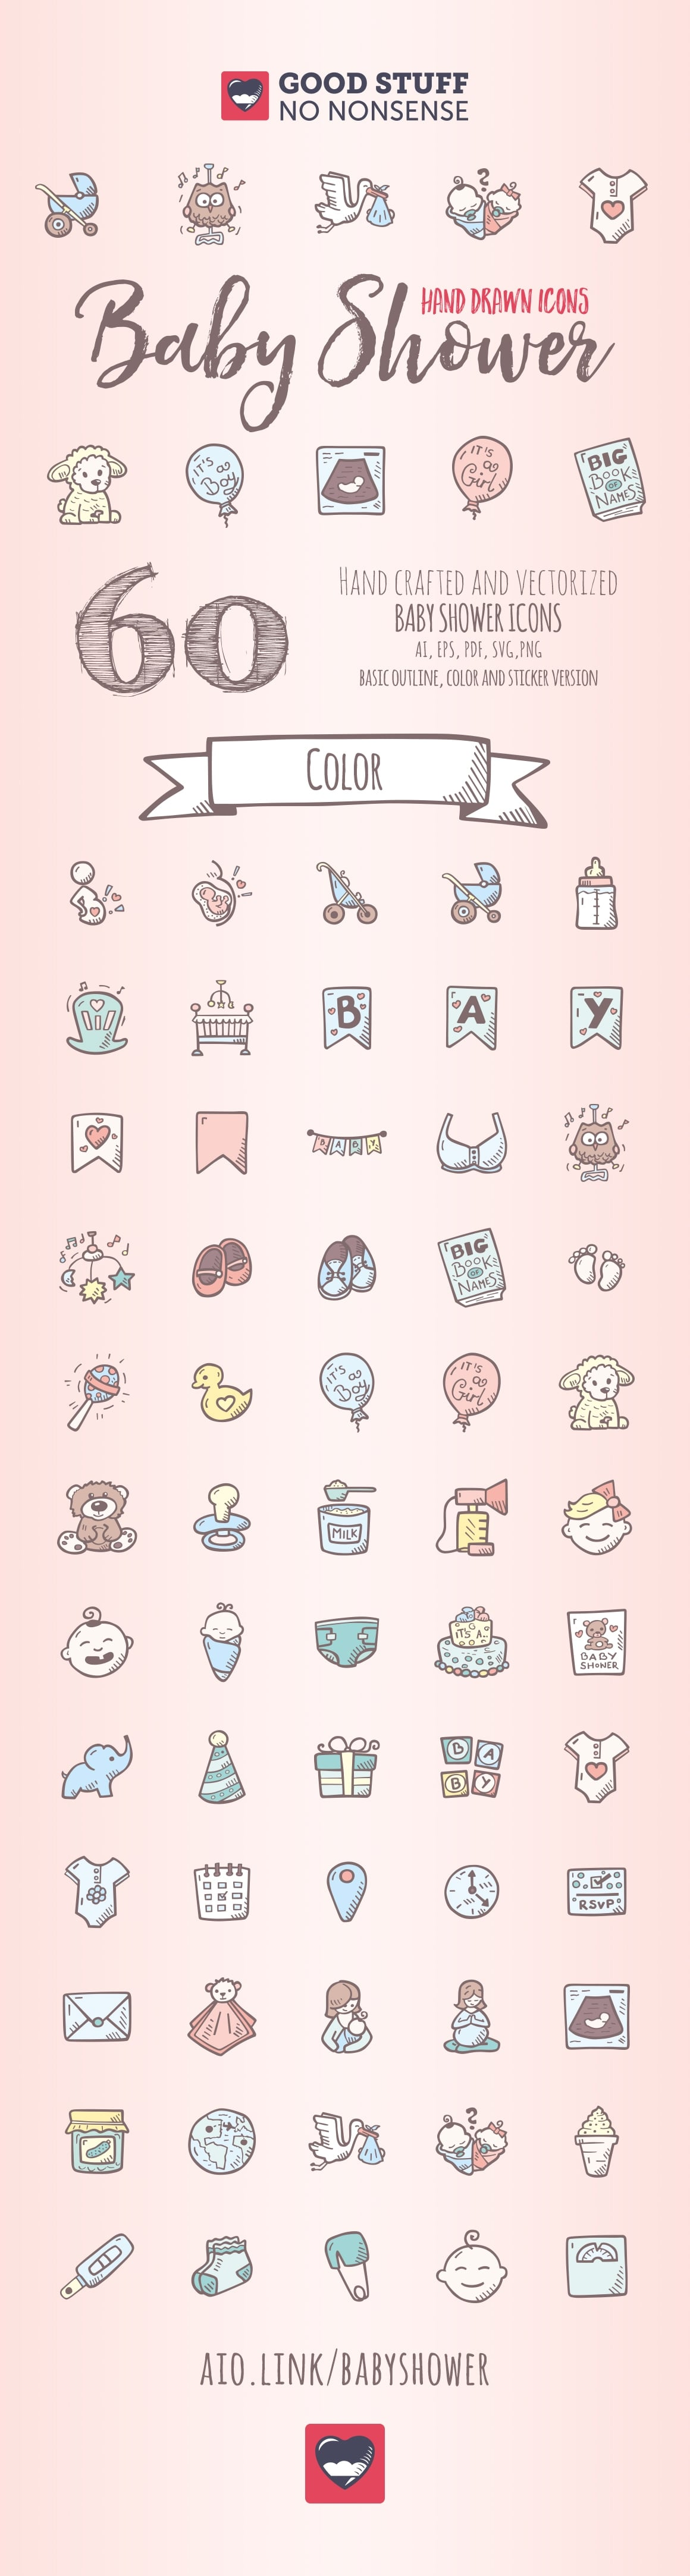 Baby Shower Icons - Good Stuff No Nonsense